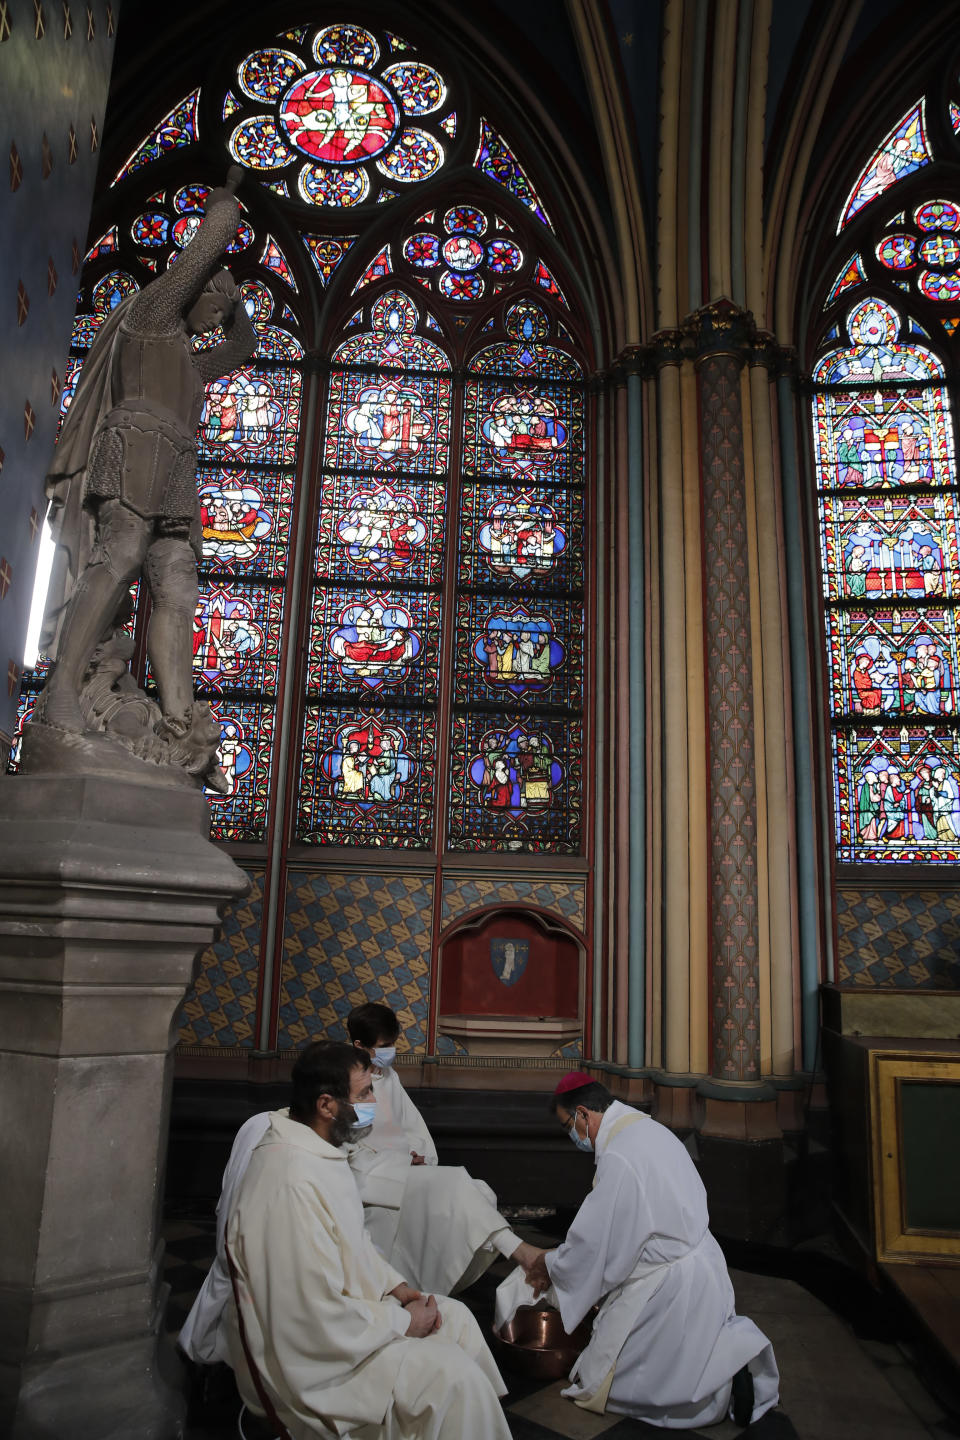 Archbishop of Paris Michel Aupetit, right, attends the Washing of the Feet ceremony for Maundy Thursday, in Notre Dame Cathedral, Thursday, April 1, 2021, almost two years after a massive fire ravaged the Gothic cathedral. (AP Photo/Christophe Ena, Pool)